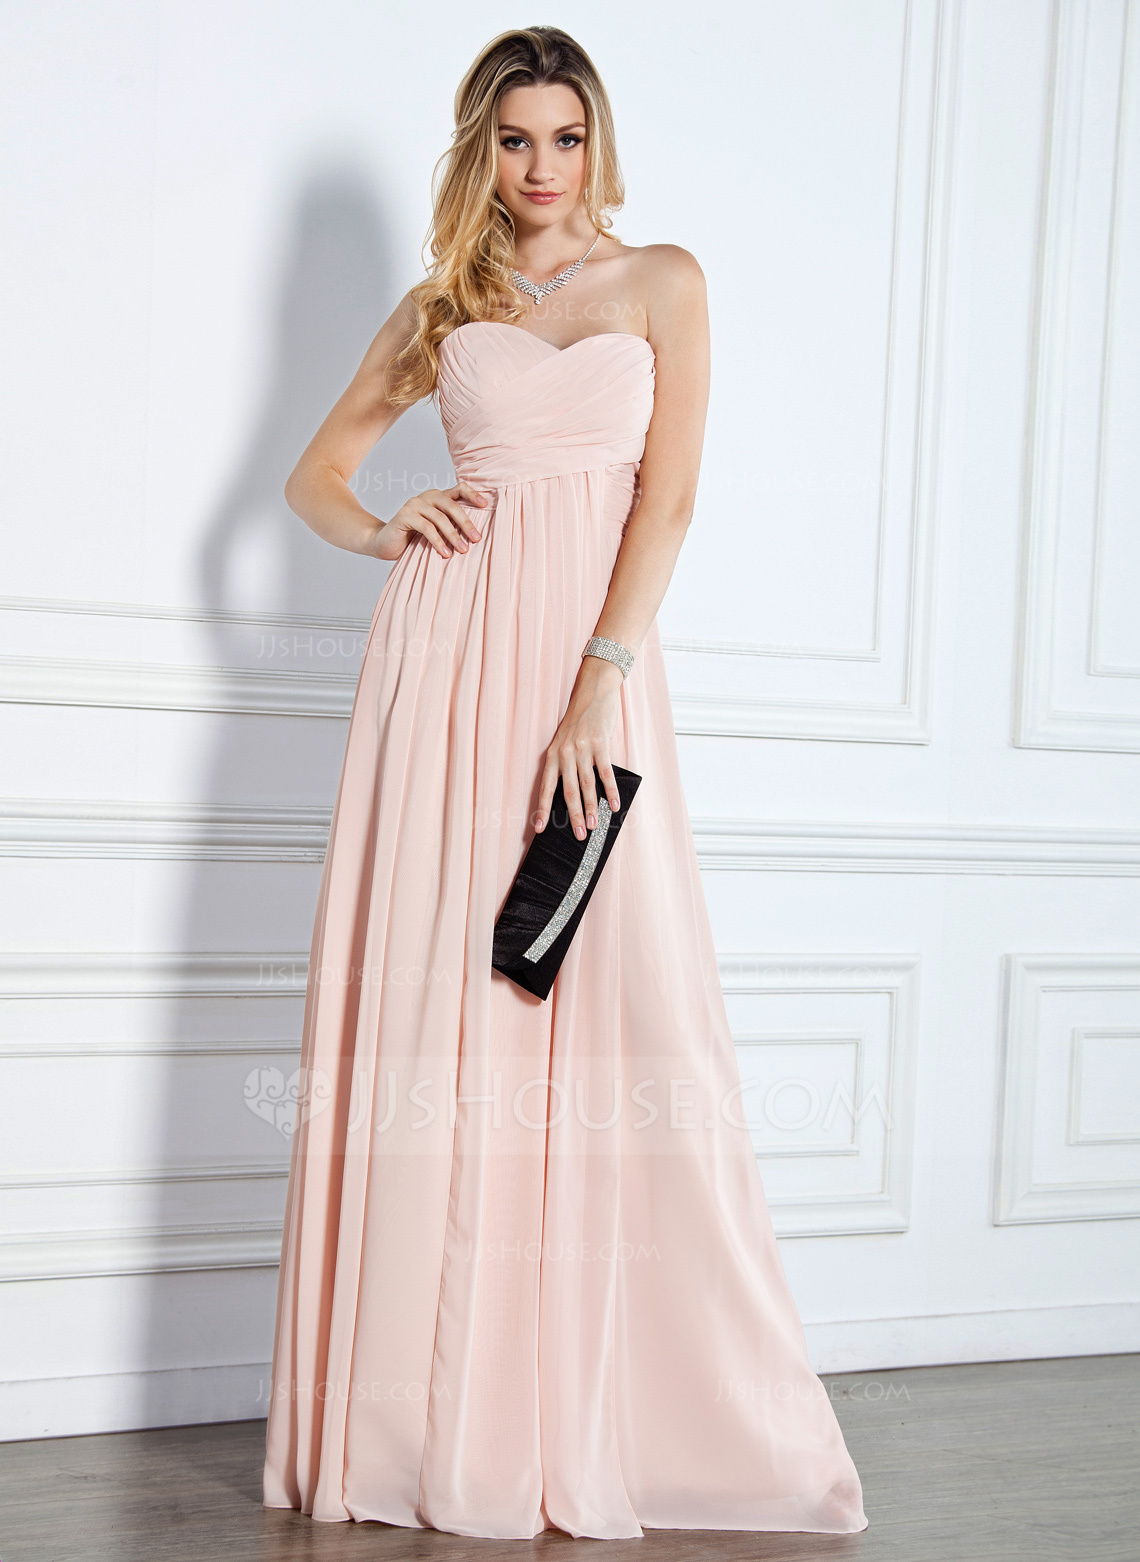 Knee length evening dresses from classic to extravagant